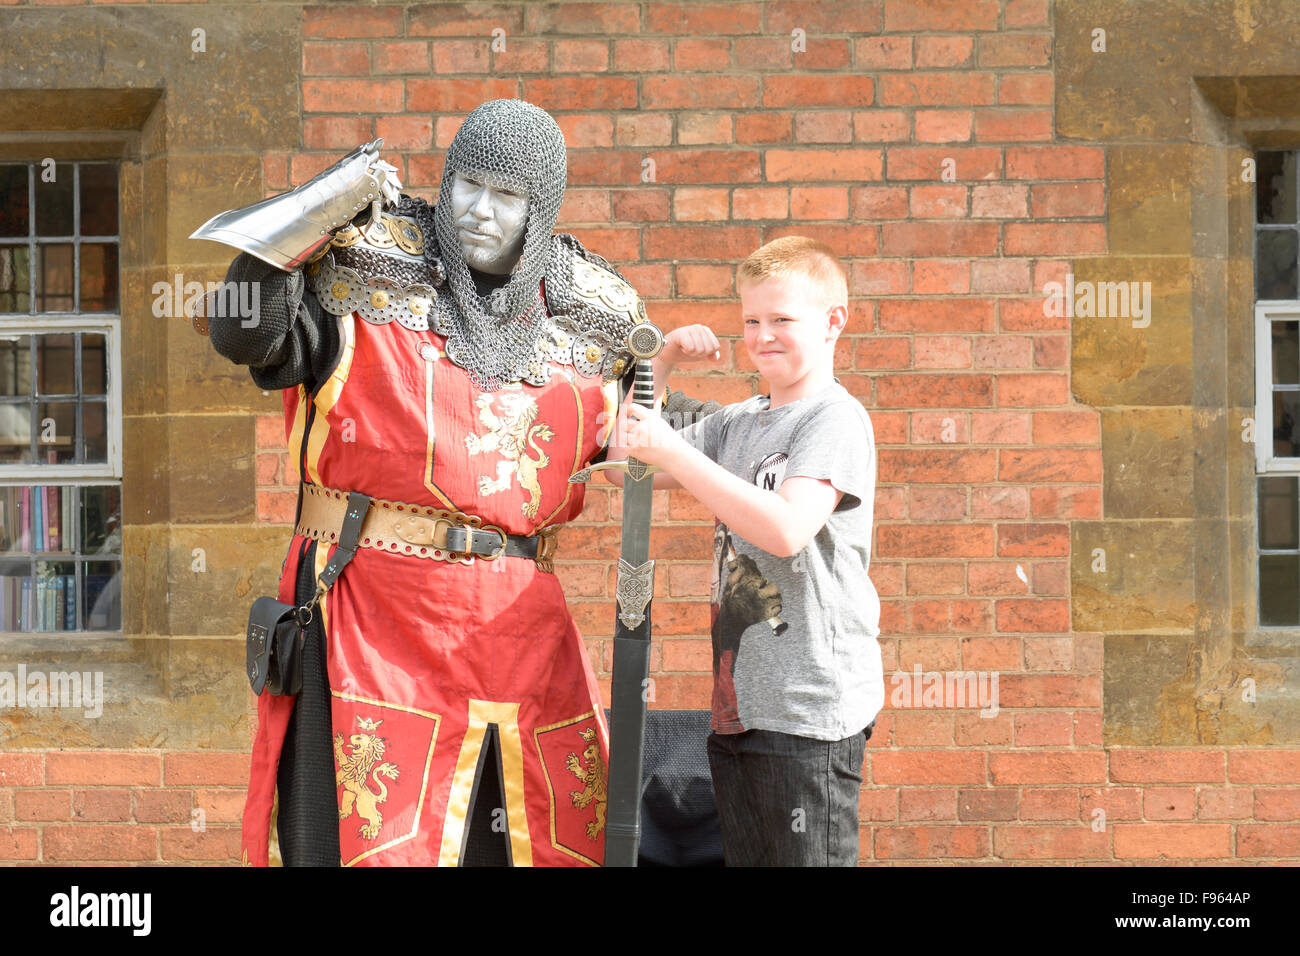 Knight street performer posing with large sword and child in Stratford upon Avon, Warwickshire, England - Stock Image